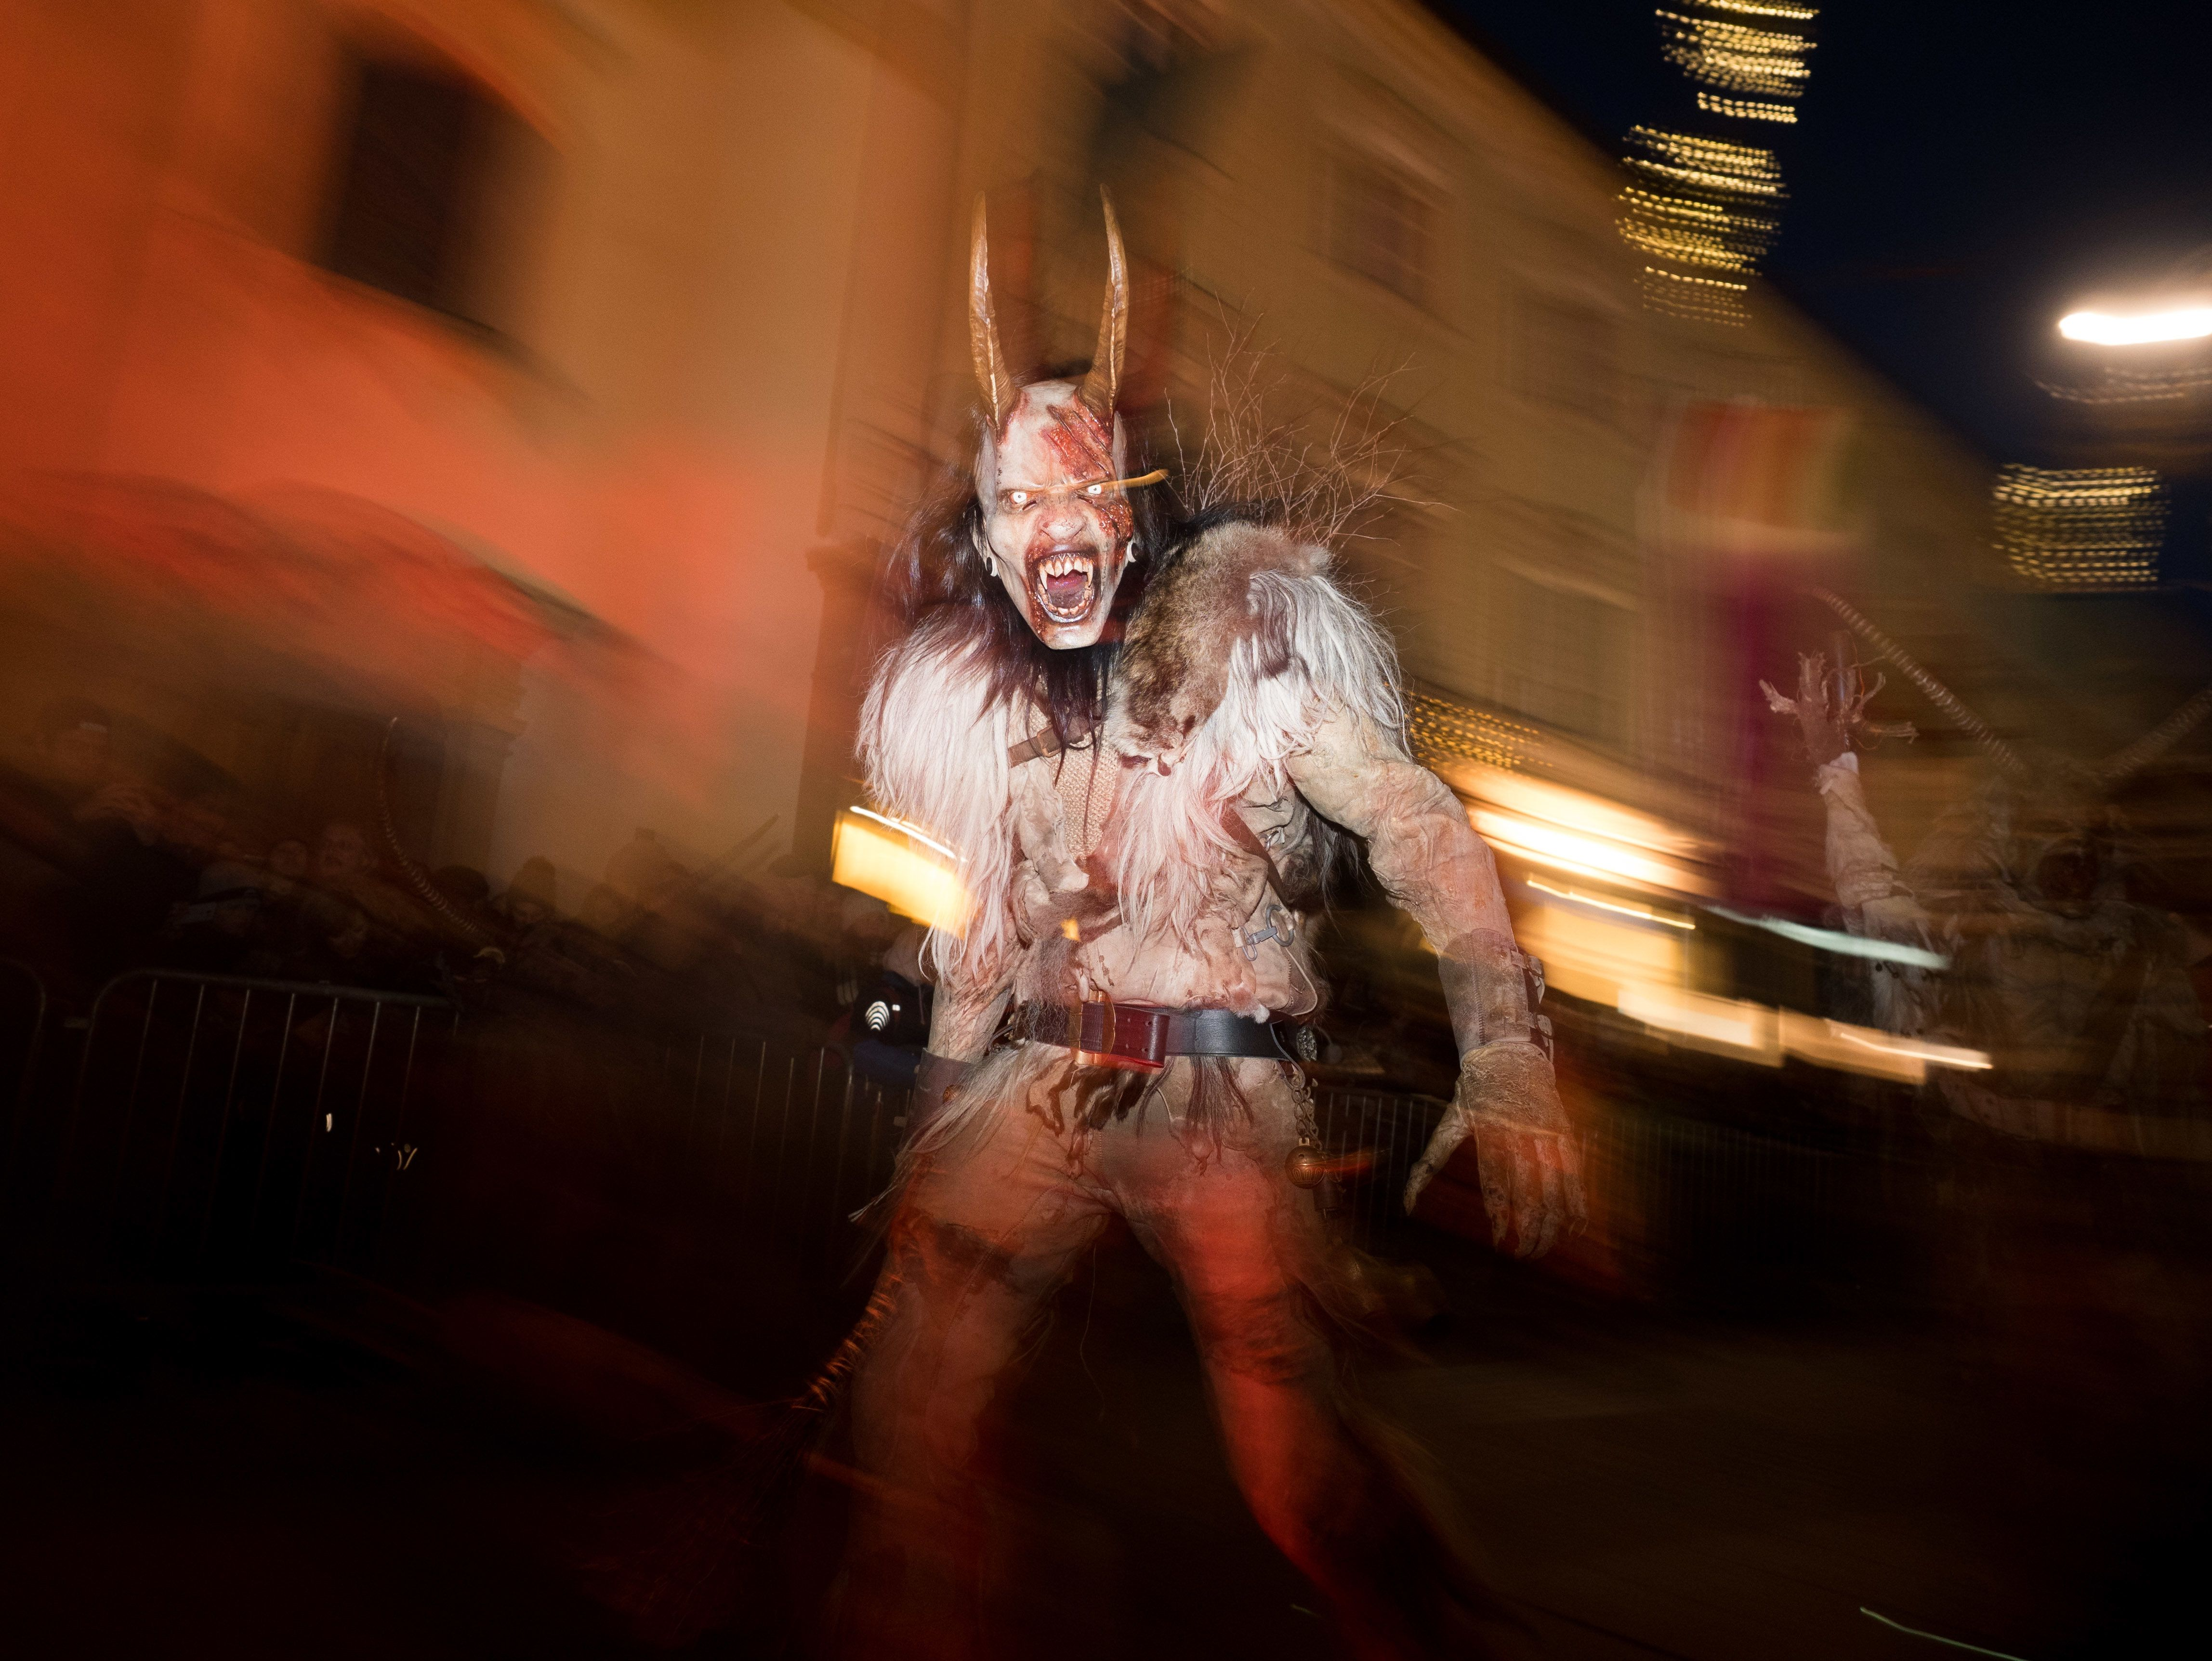 GRAZ, AUSTRIA - 2017/12/03: A devil character seen running in the centre of Graz. Around December 6th, St. Nicolas Day, people dress up as devils run through streets of towns and villages in Austria. They seem like if they jumped out from a horror movie. Or from the hell. They are dressed in animal skins, have horns, strange instruments to scary people. Their faces are turned into nasty grins. They are covered with blood and scars and their long teeth dangle out of their mouths. Special tradition of a devil characters named 'krampus' and 'percht' who are coming with the St. Nicolas to punish bad people was born in remote valleys of Alp mountains hundreds years ago. Long winter nights were full of monsters. But at the end, krampus and percht were not just negative characters. They came to punish everything bad and prepare people for a new start. All the negative things in the village should be forgotten after krampus night. Until now, people dress animal skins and wooden masks to run and scare the audience. They are accompanied by pyrotechnic and light effects and hard music. They keep the tradition clear: no plastic. No Hollywood. Just wooden masks are allowed. Masks cost between 600 to 1200 euro each. Plus horns, animal skin for clothes and special shoes. Some groups come with strange vehicles. They prepare new performance each year. (Photo by Jana Cavojska/SOPA Images/LightRocket via Getty Images)